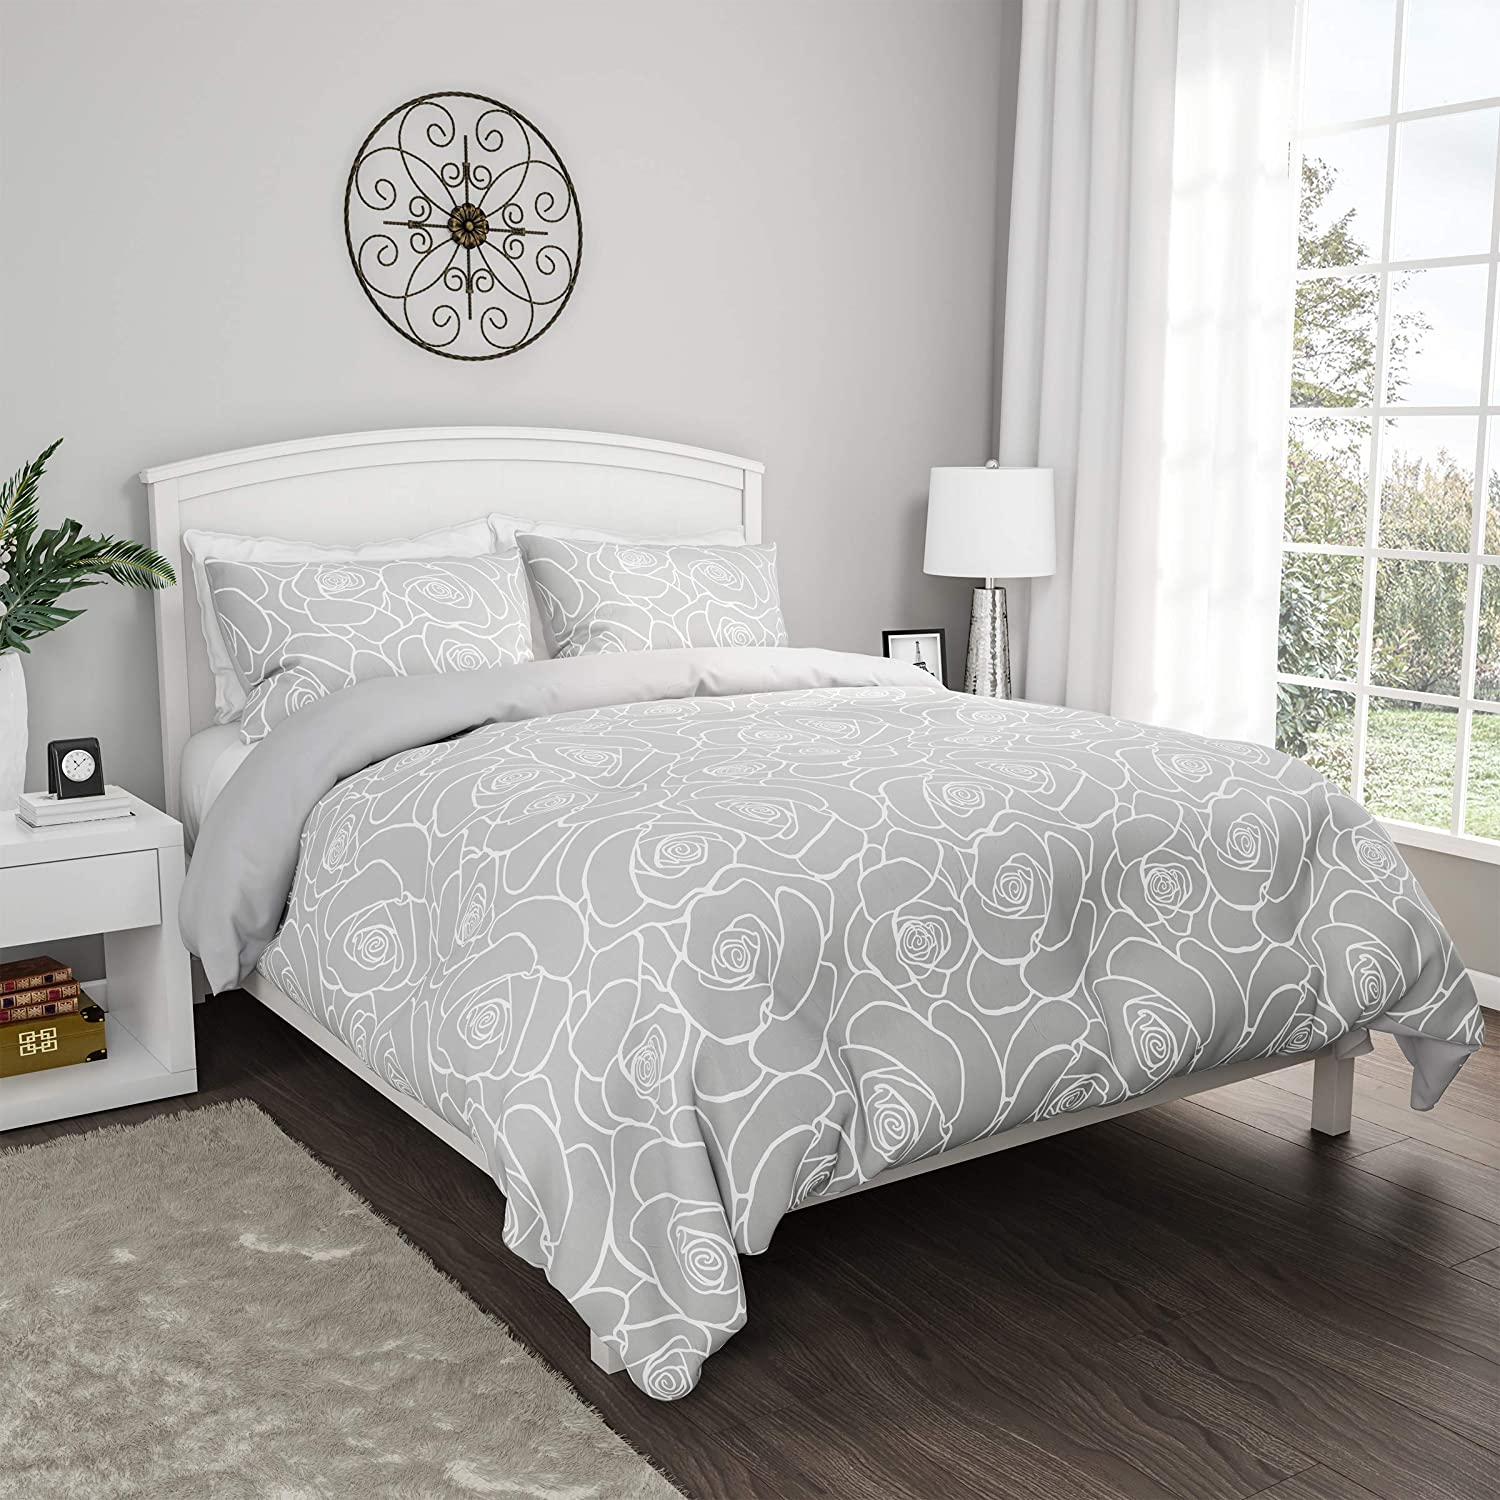 "Lavish Home Collection 3-Piece Comforter and Sham Set – ""Bed of Roses"" Reversible, Hypoallergenic and Soft Microfiber Floral Down Alternative Bedding (King)"